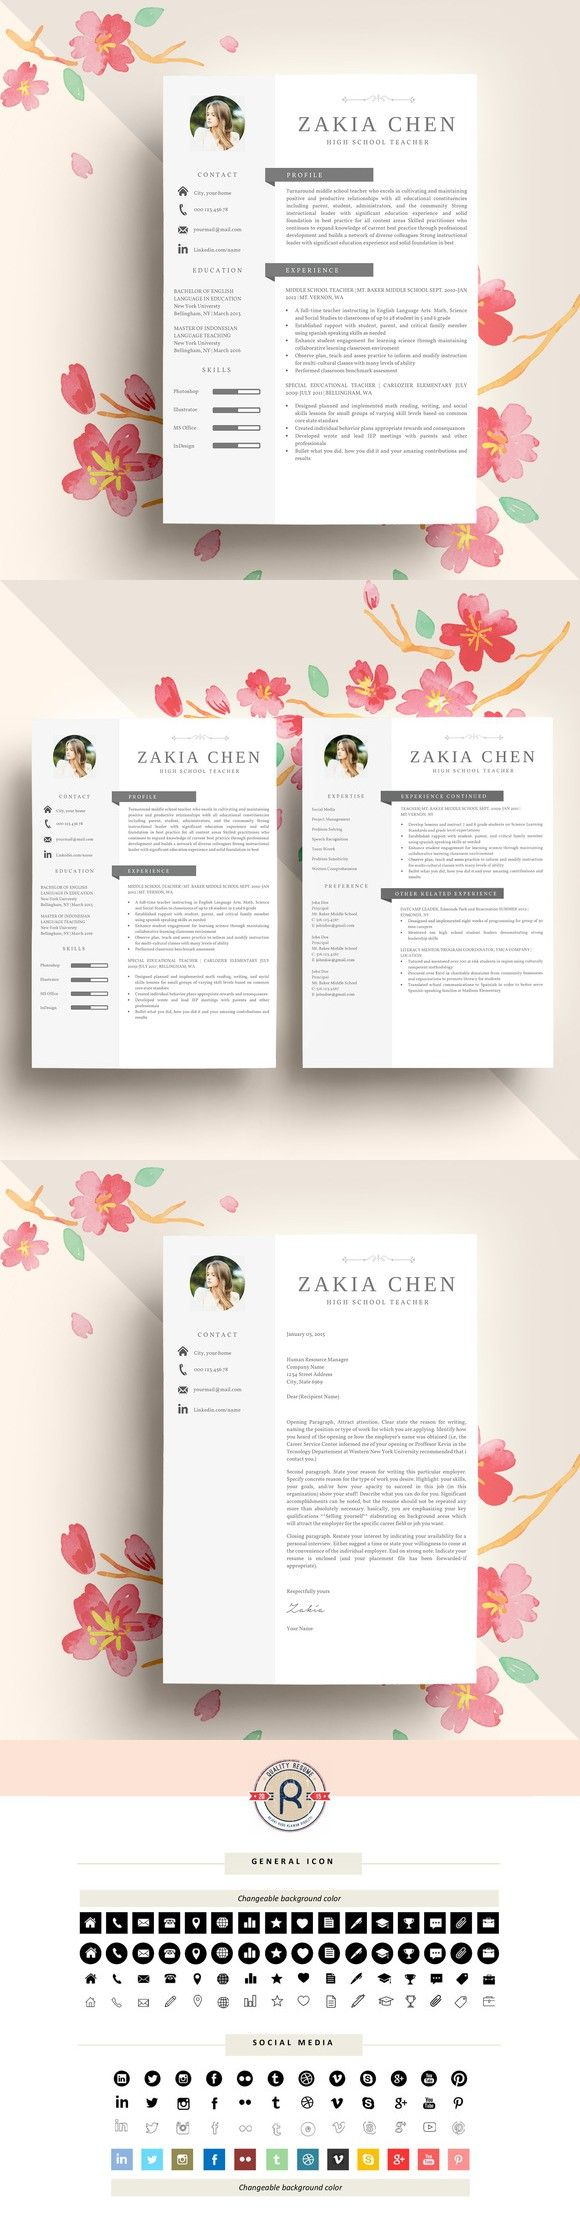 236 best images about resume design layout on pinterest